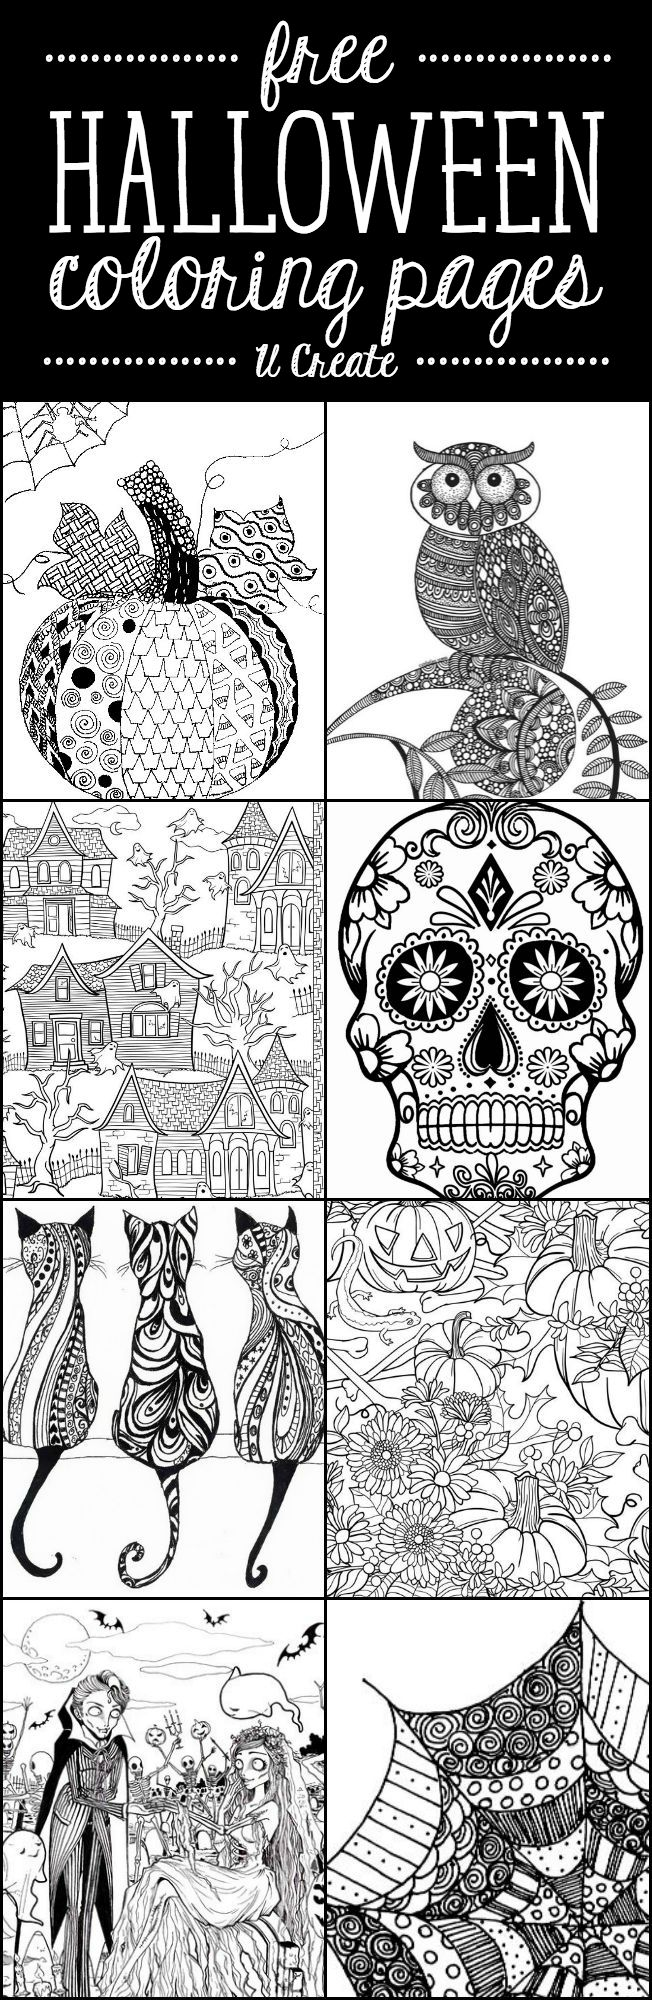 free halloween adult coloring pages at u create - Free Adult Coloring Pages To Print